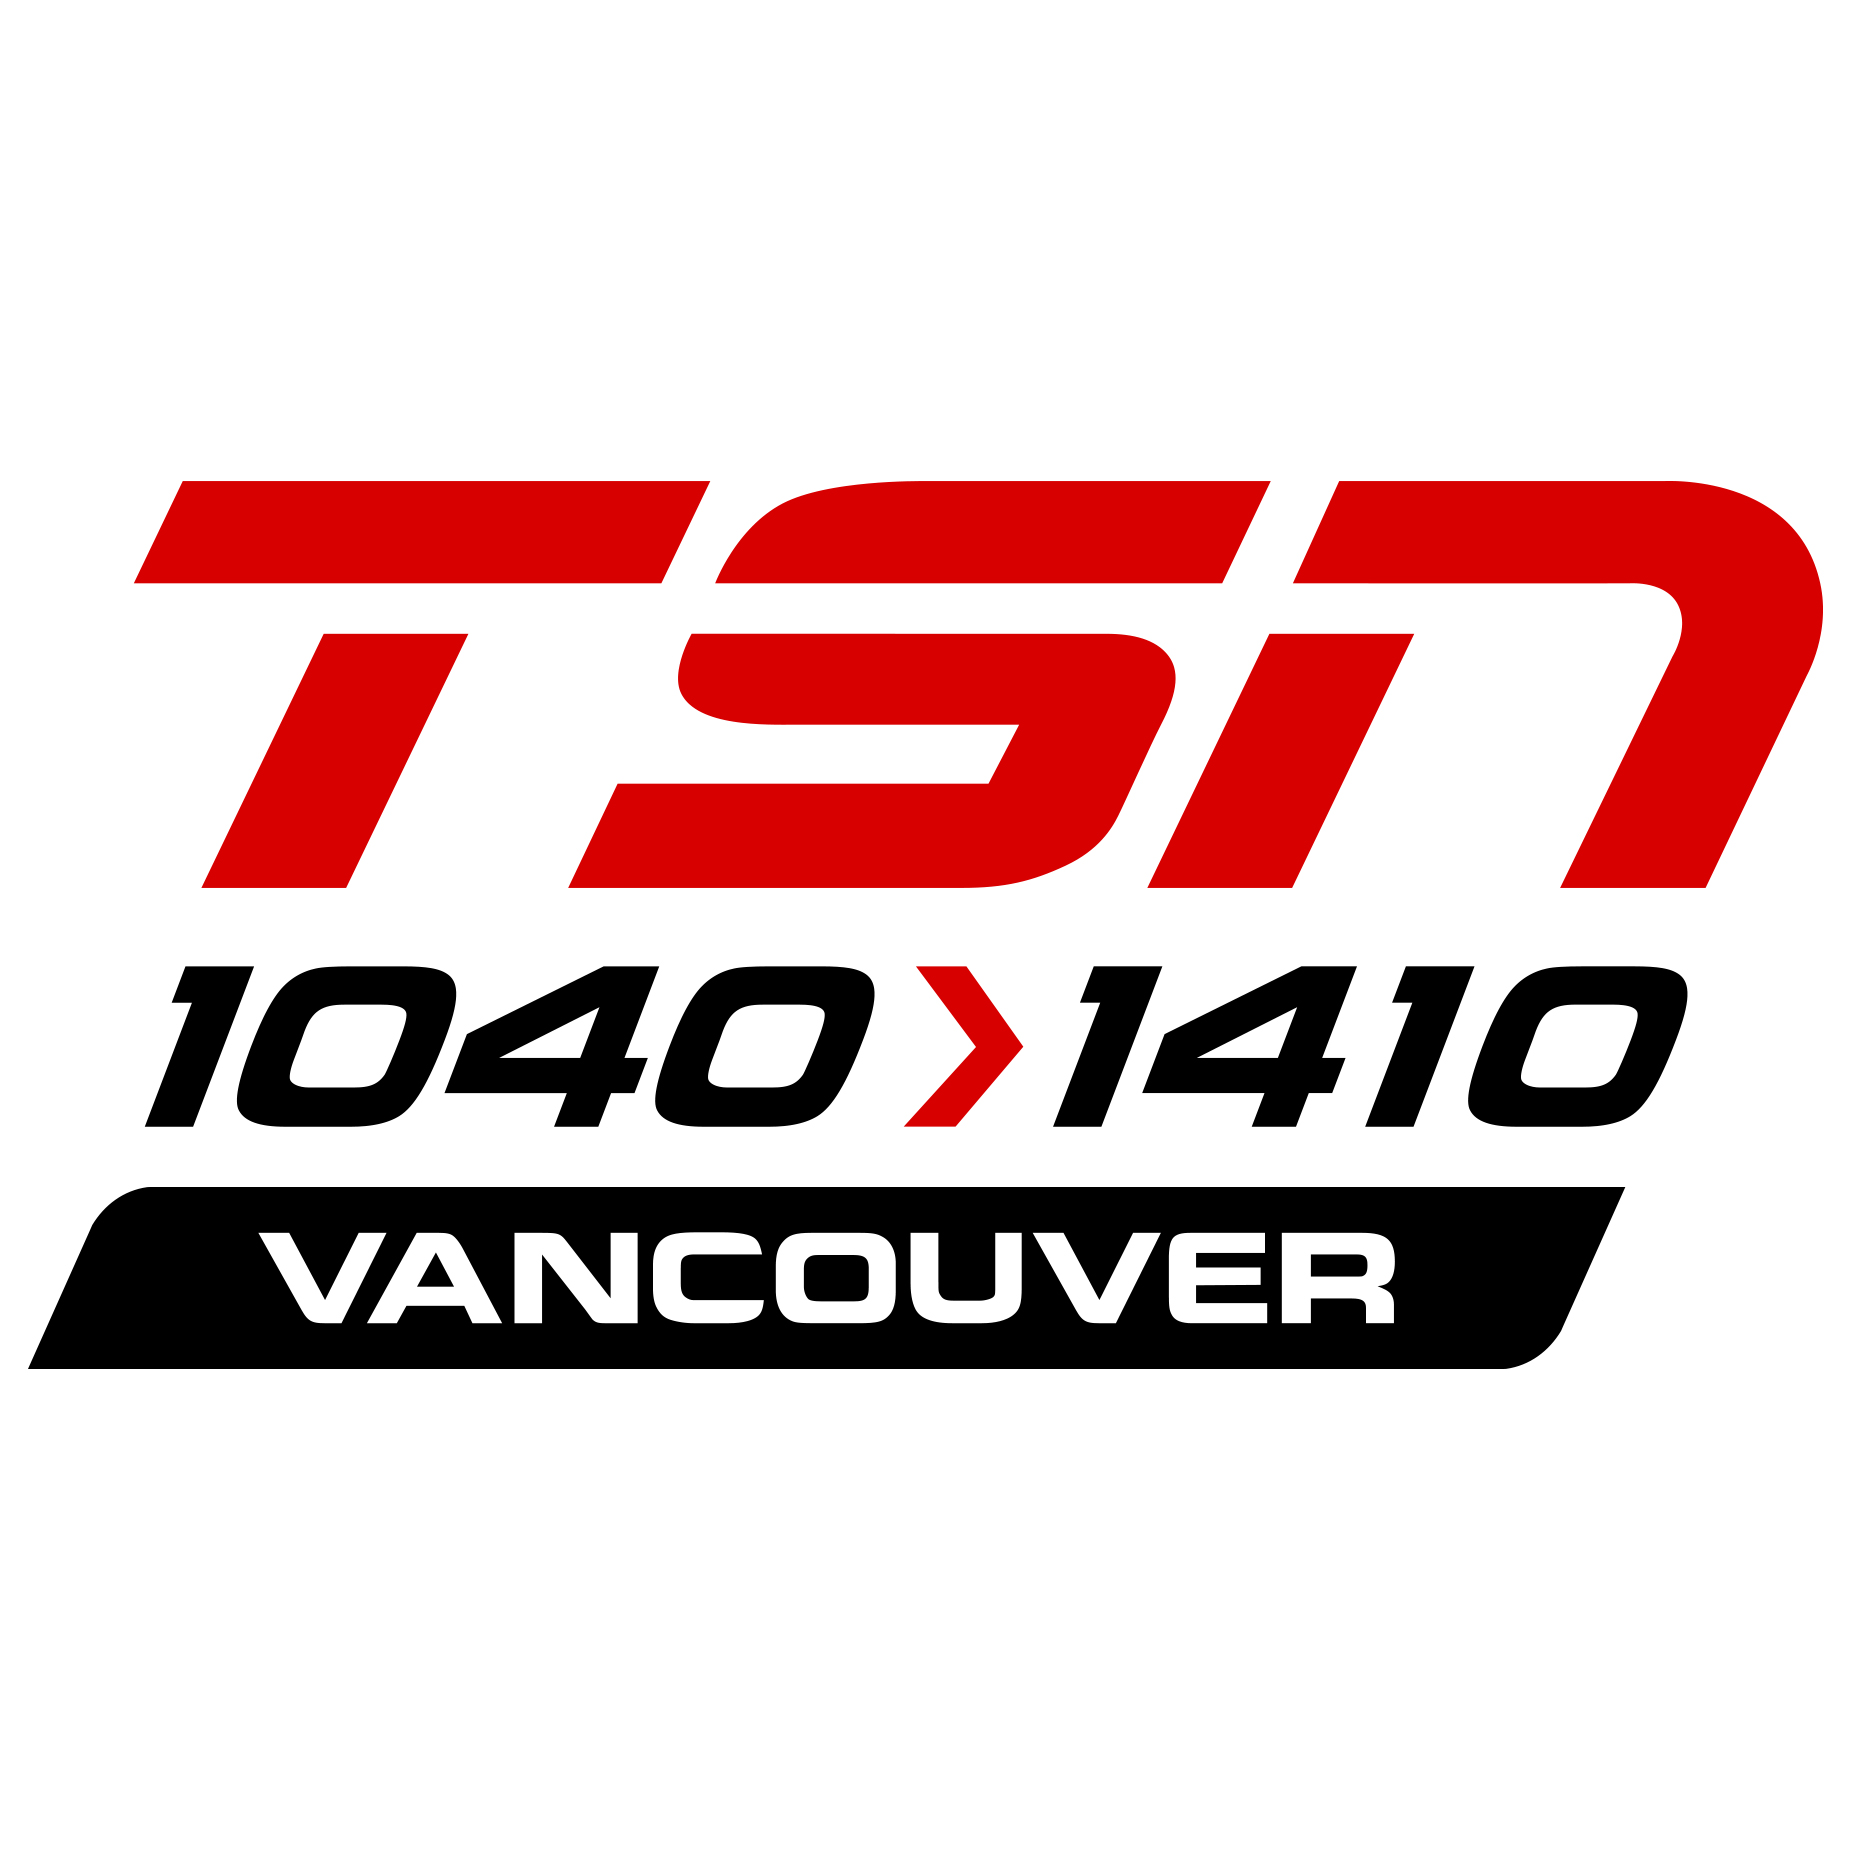 TSN 1040: Vancouver Canucks Hockey Games